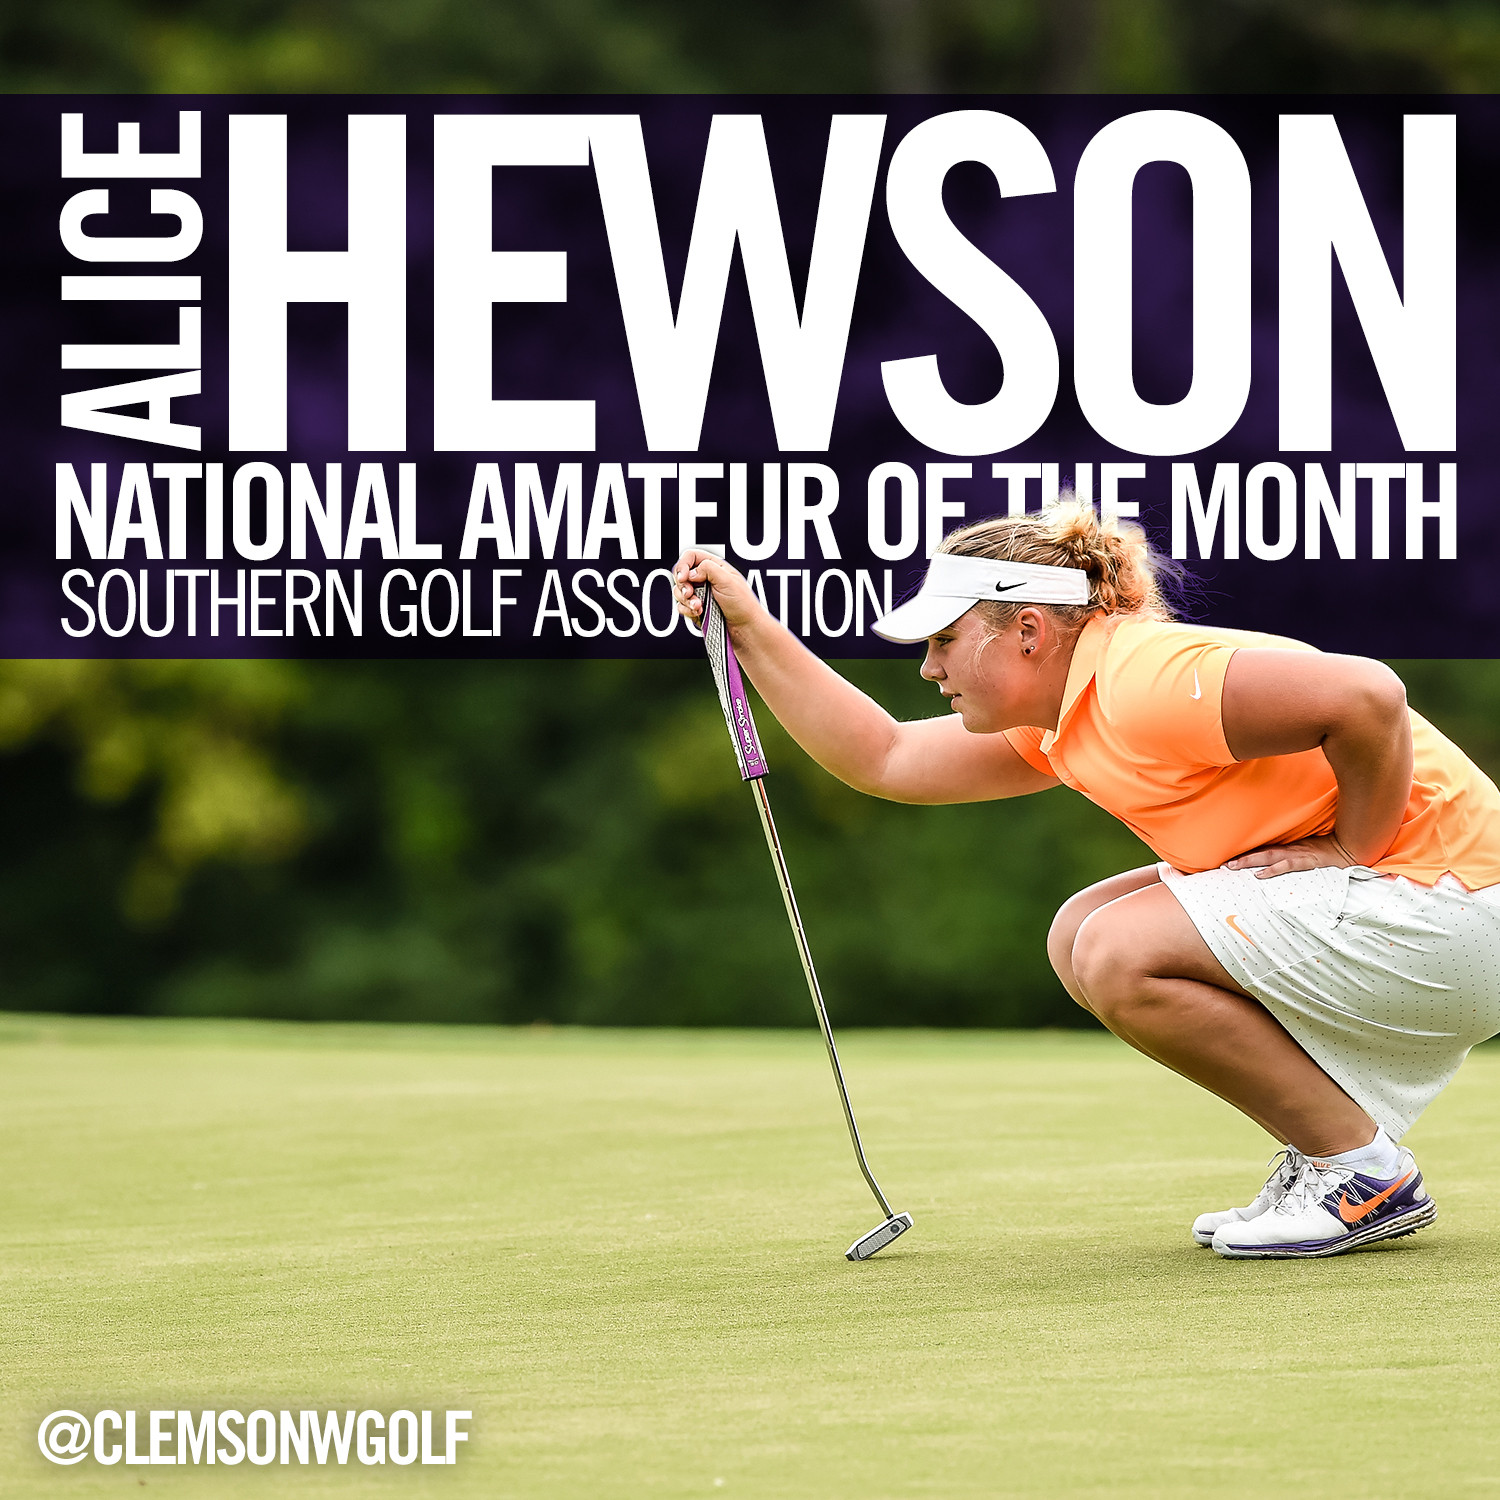 Hewson Named National Player of the Month